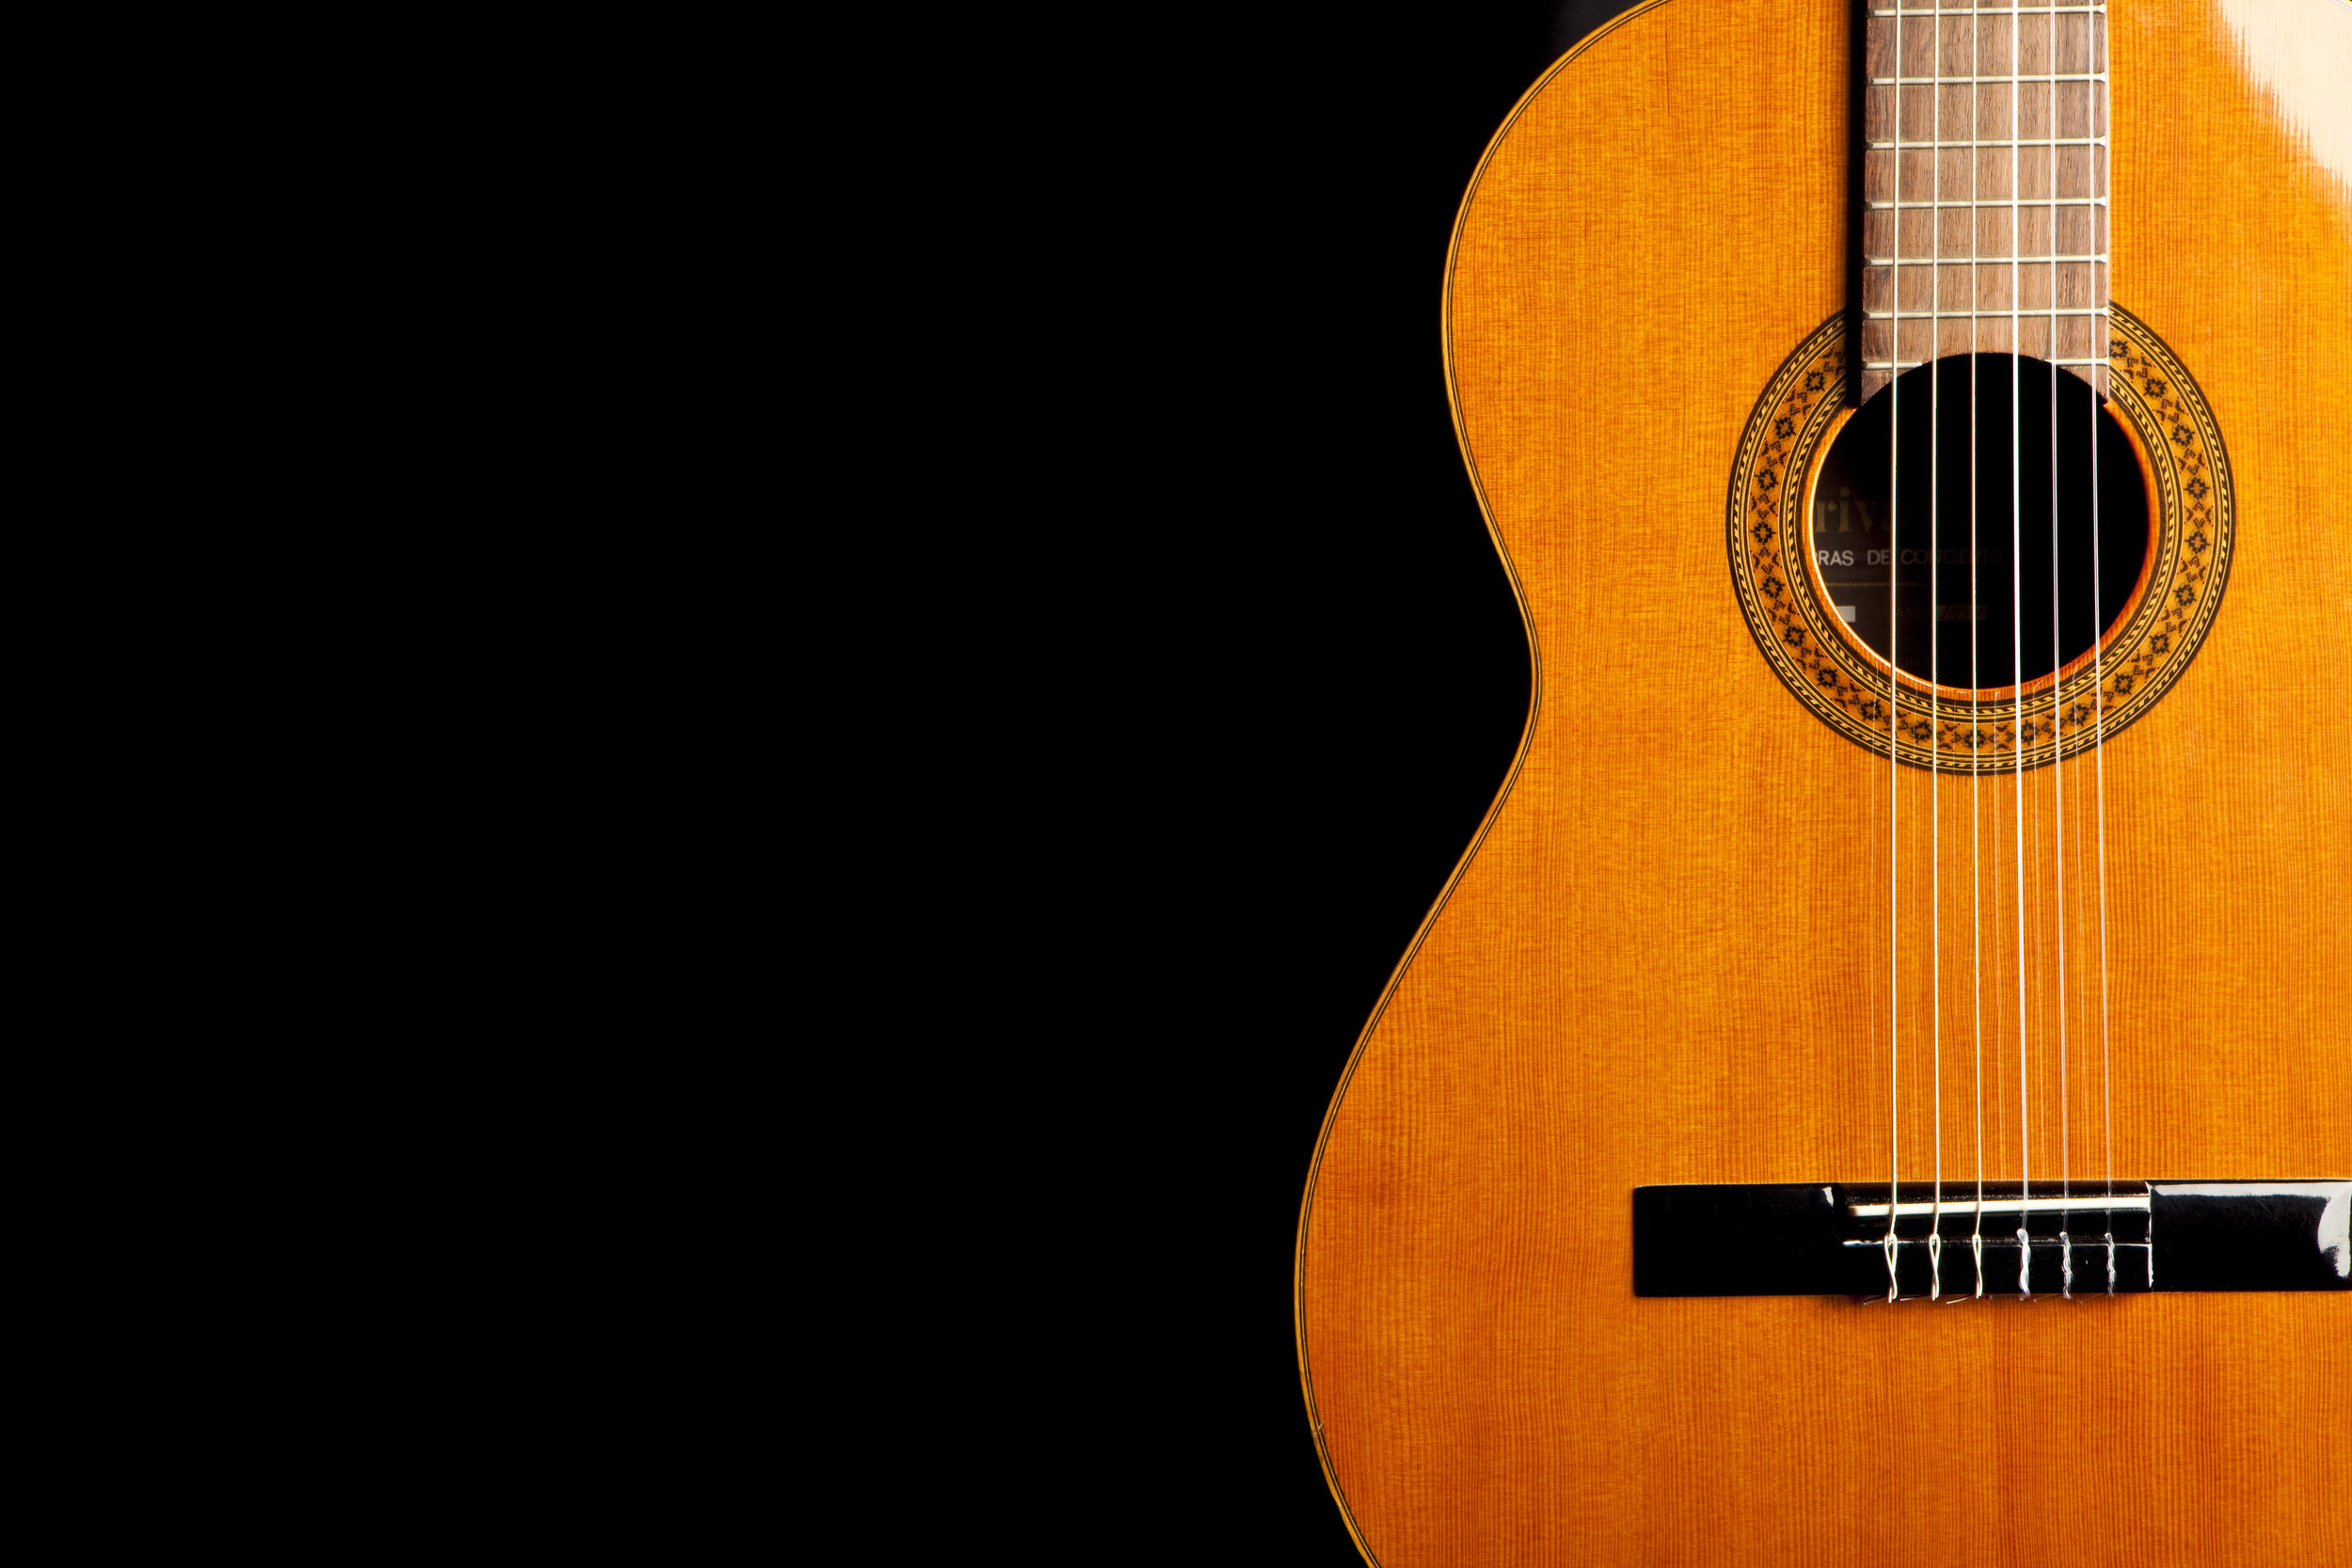 Spanish Classical Guitar_AdobeStock_33352914.jpeg